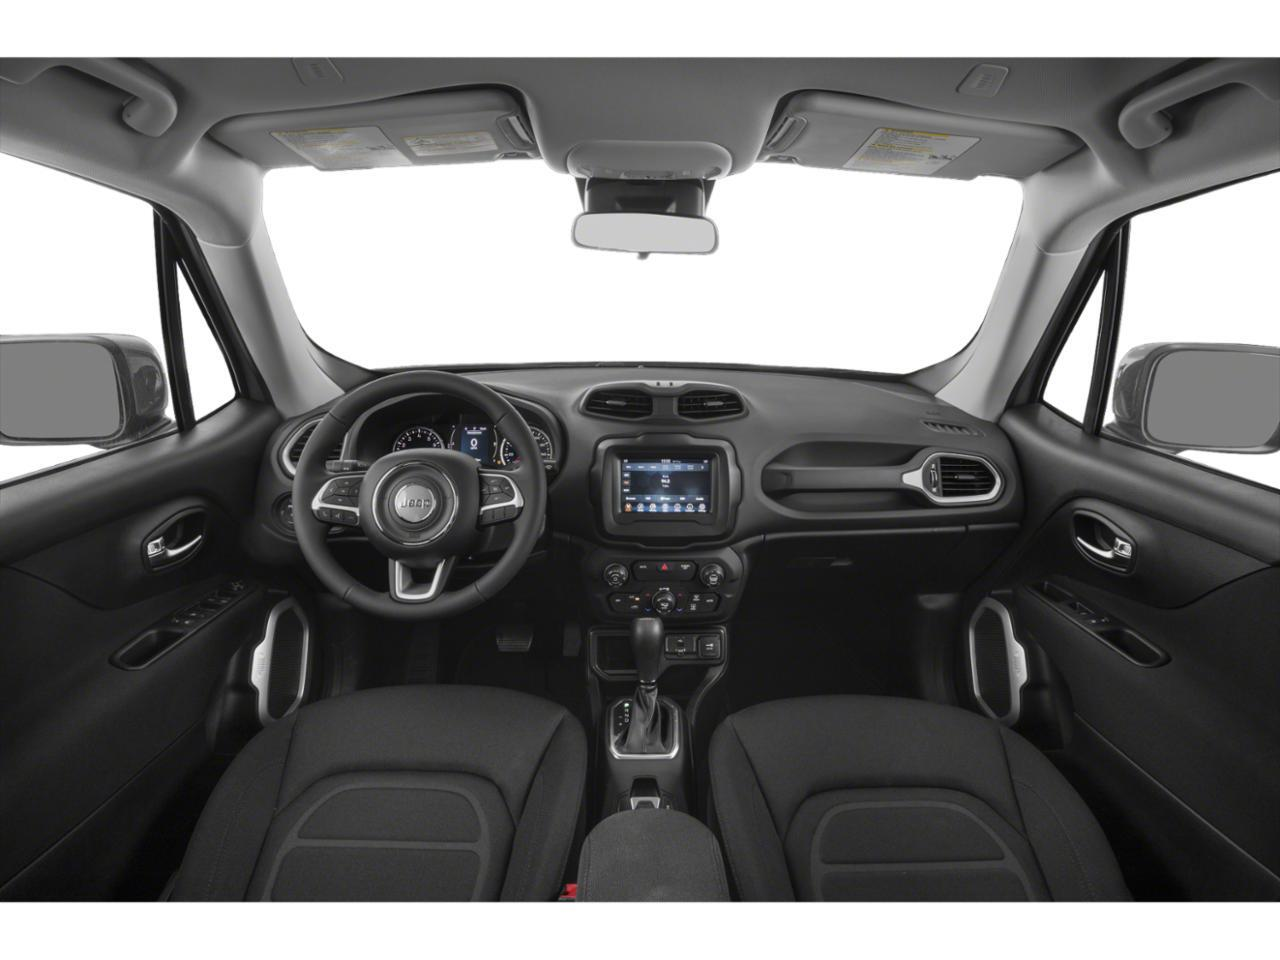 2021 Jeep Renegade LATITUDE 4X4 Oshkosh WI